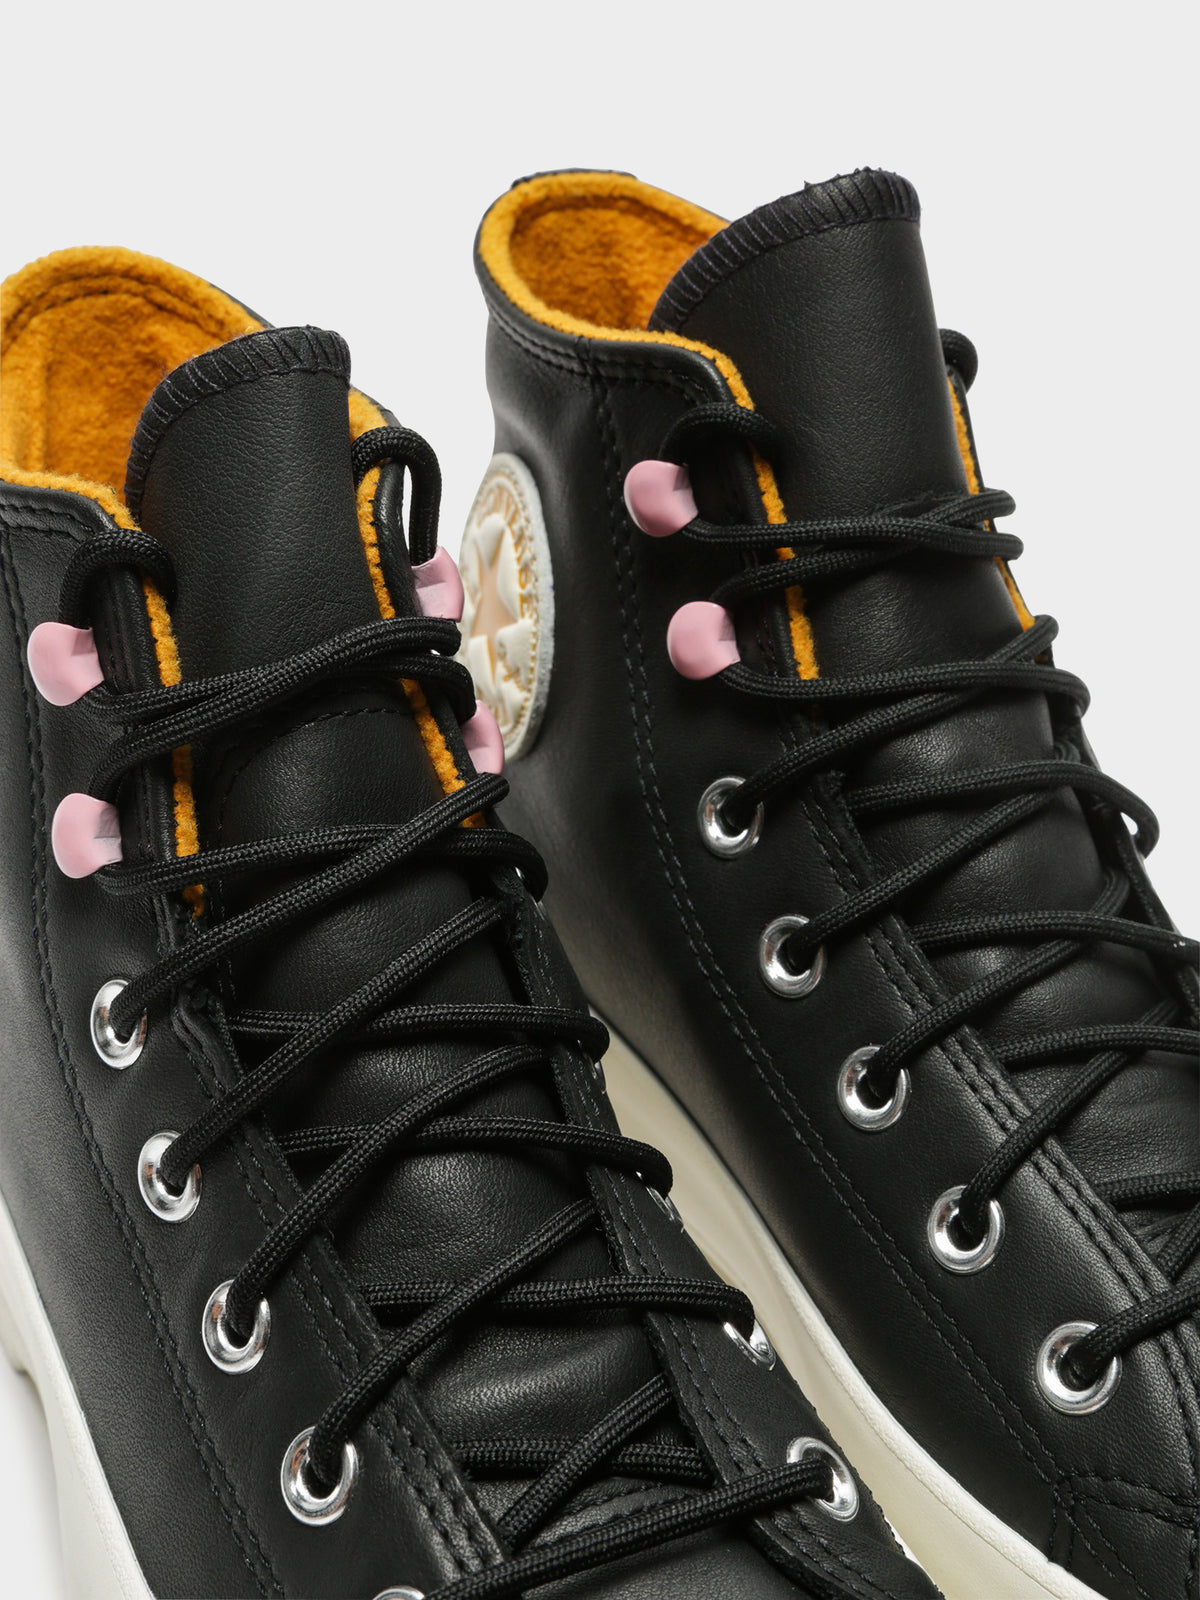 Womens Chuck Taylor All Star Lugged Winter High Top Sneakers in Black & Staffron Yellow